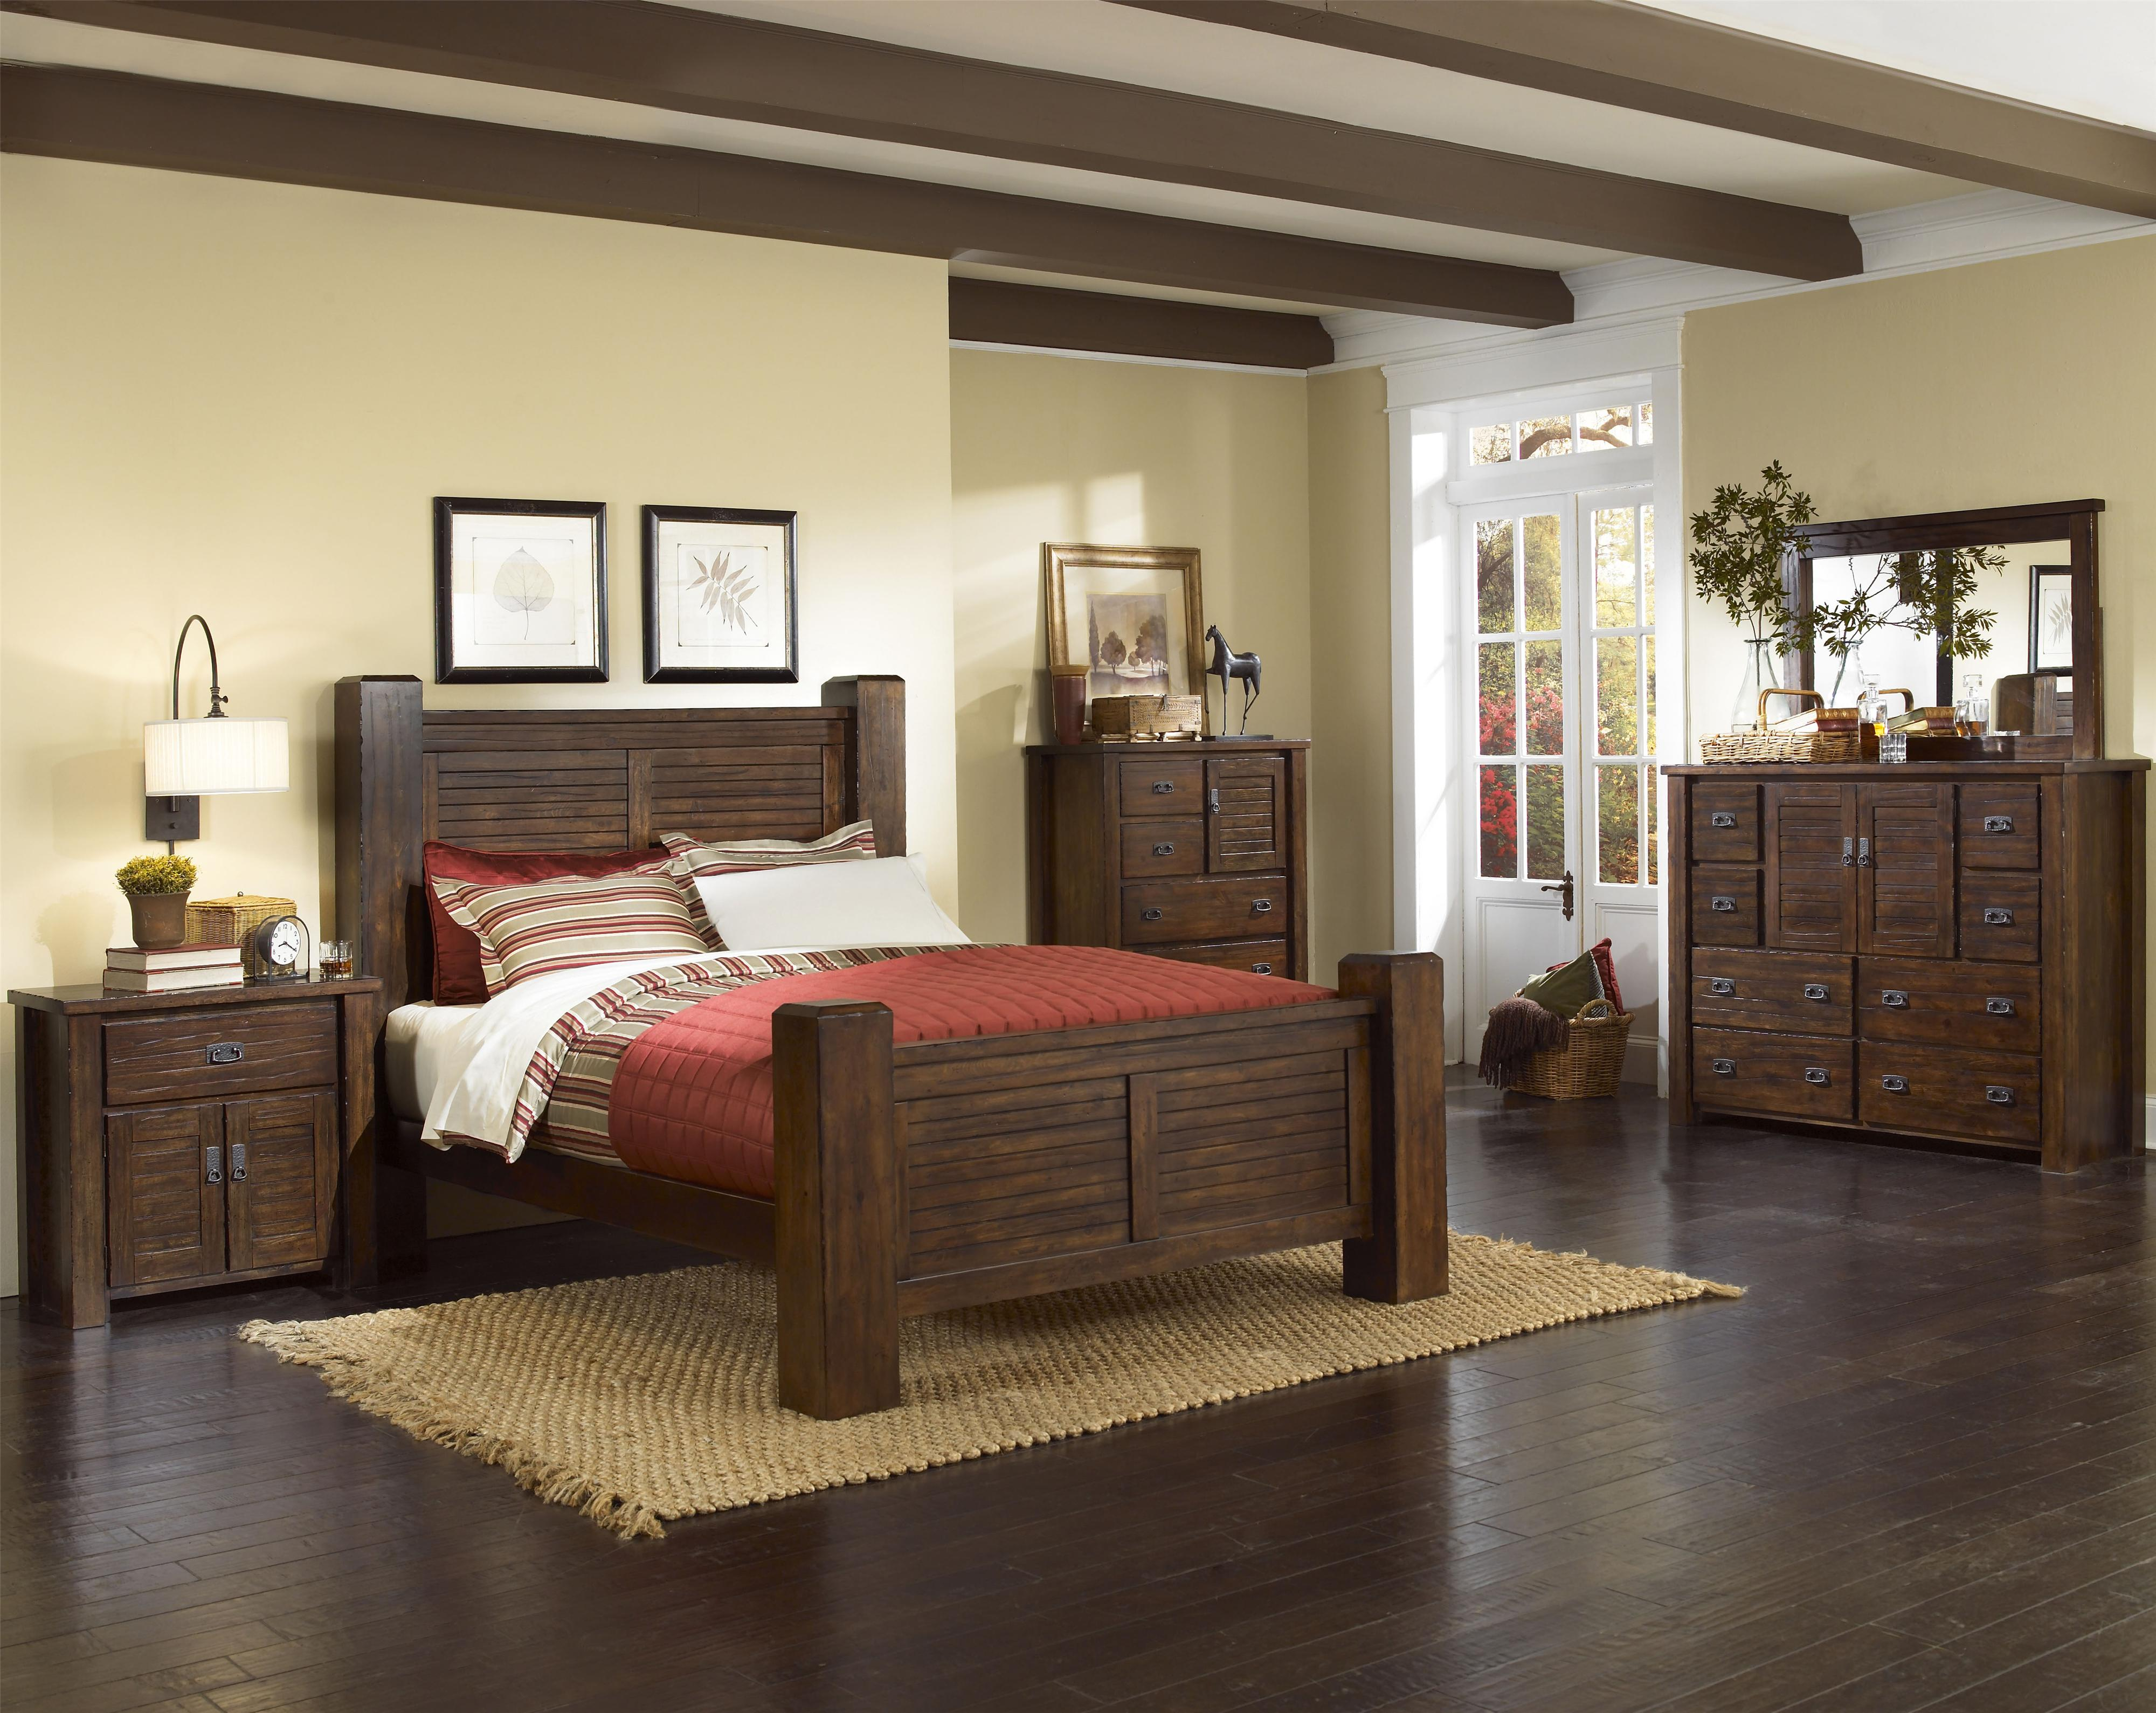 Trestlewood California King Bedroom Group by Progressive Furniture at Bullard Furniture